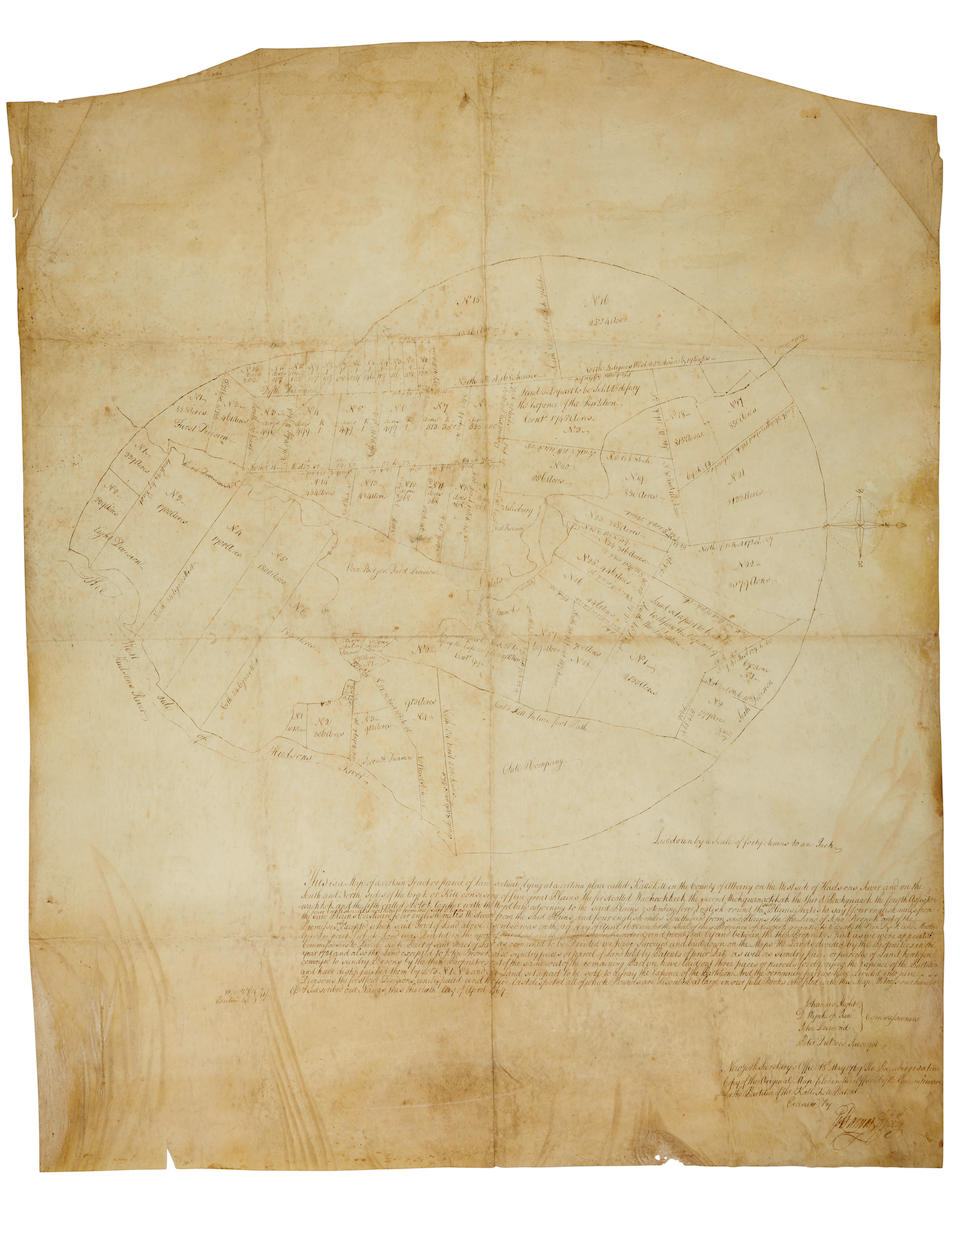 Catskill Creek Land Grant. Commissioners of the KattsKill Patent. This is a map of a certain parcel of land ... lying at a place called Kattskill in the County of Albany on the west side of Hudsons River. New York Secretary's Office 18th May 1769. The preceeding is a true copy of the original mapfiled in this office by the Commissioners for the partition of the KattsKill Patent.